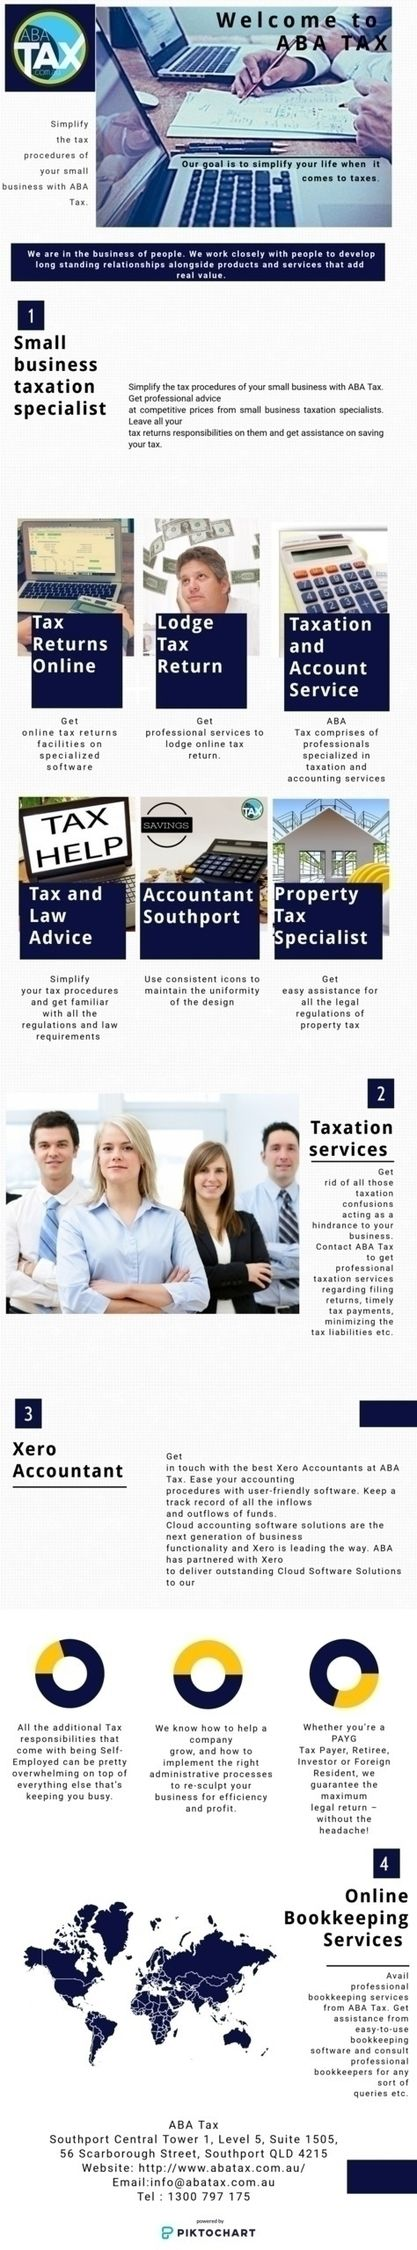 Avail accounting services ABA T - abatax | ello